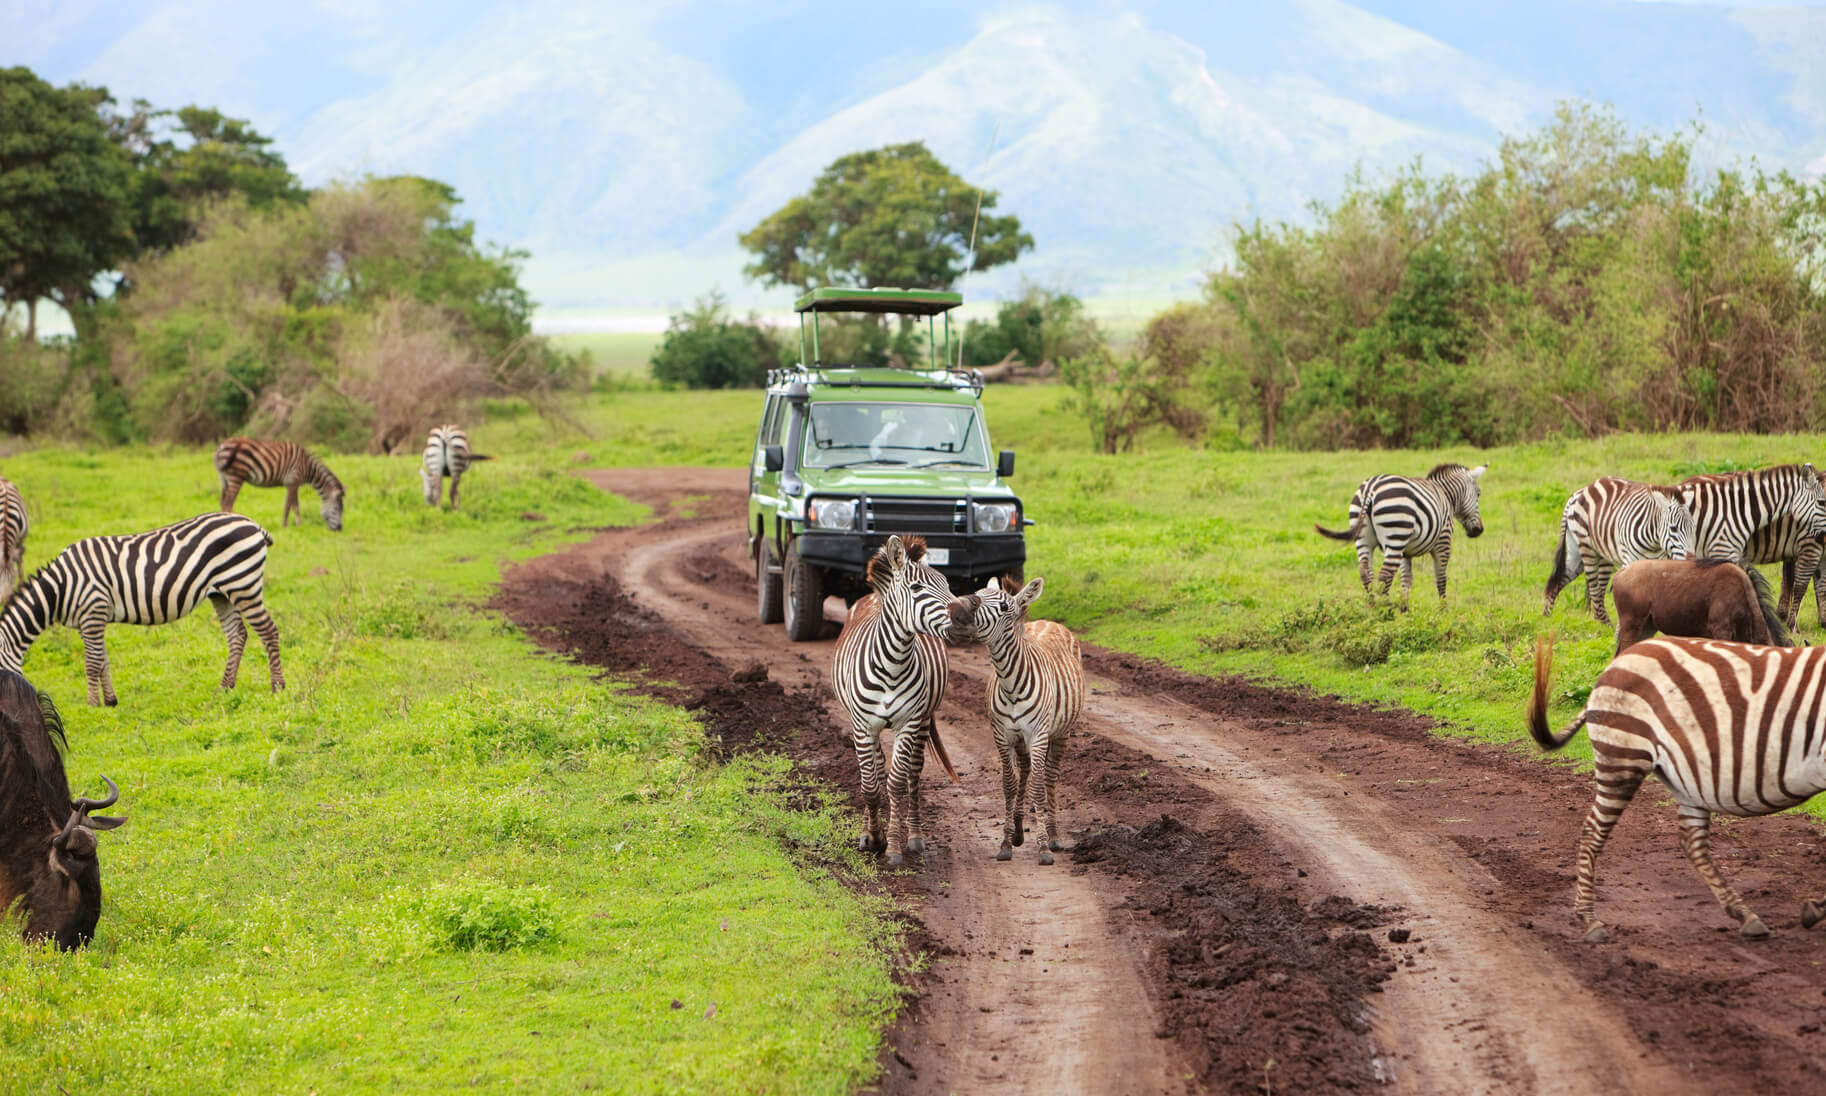 Milan, Italy to Nairobi, Kenya for only €363 roundtrip